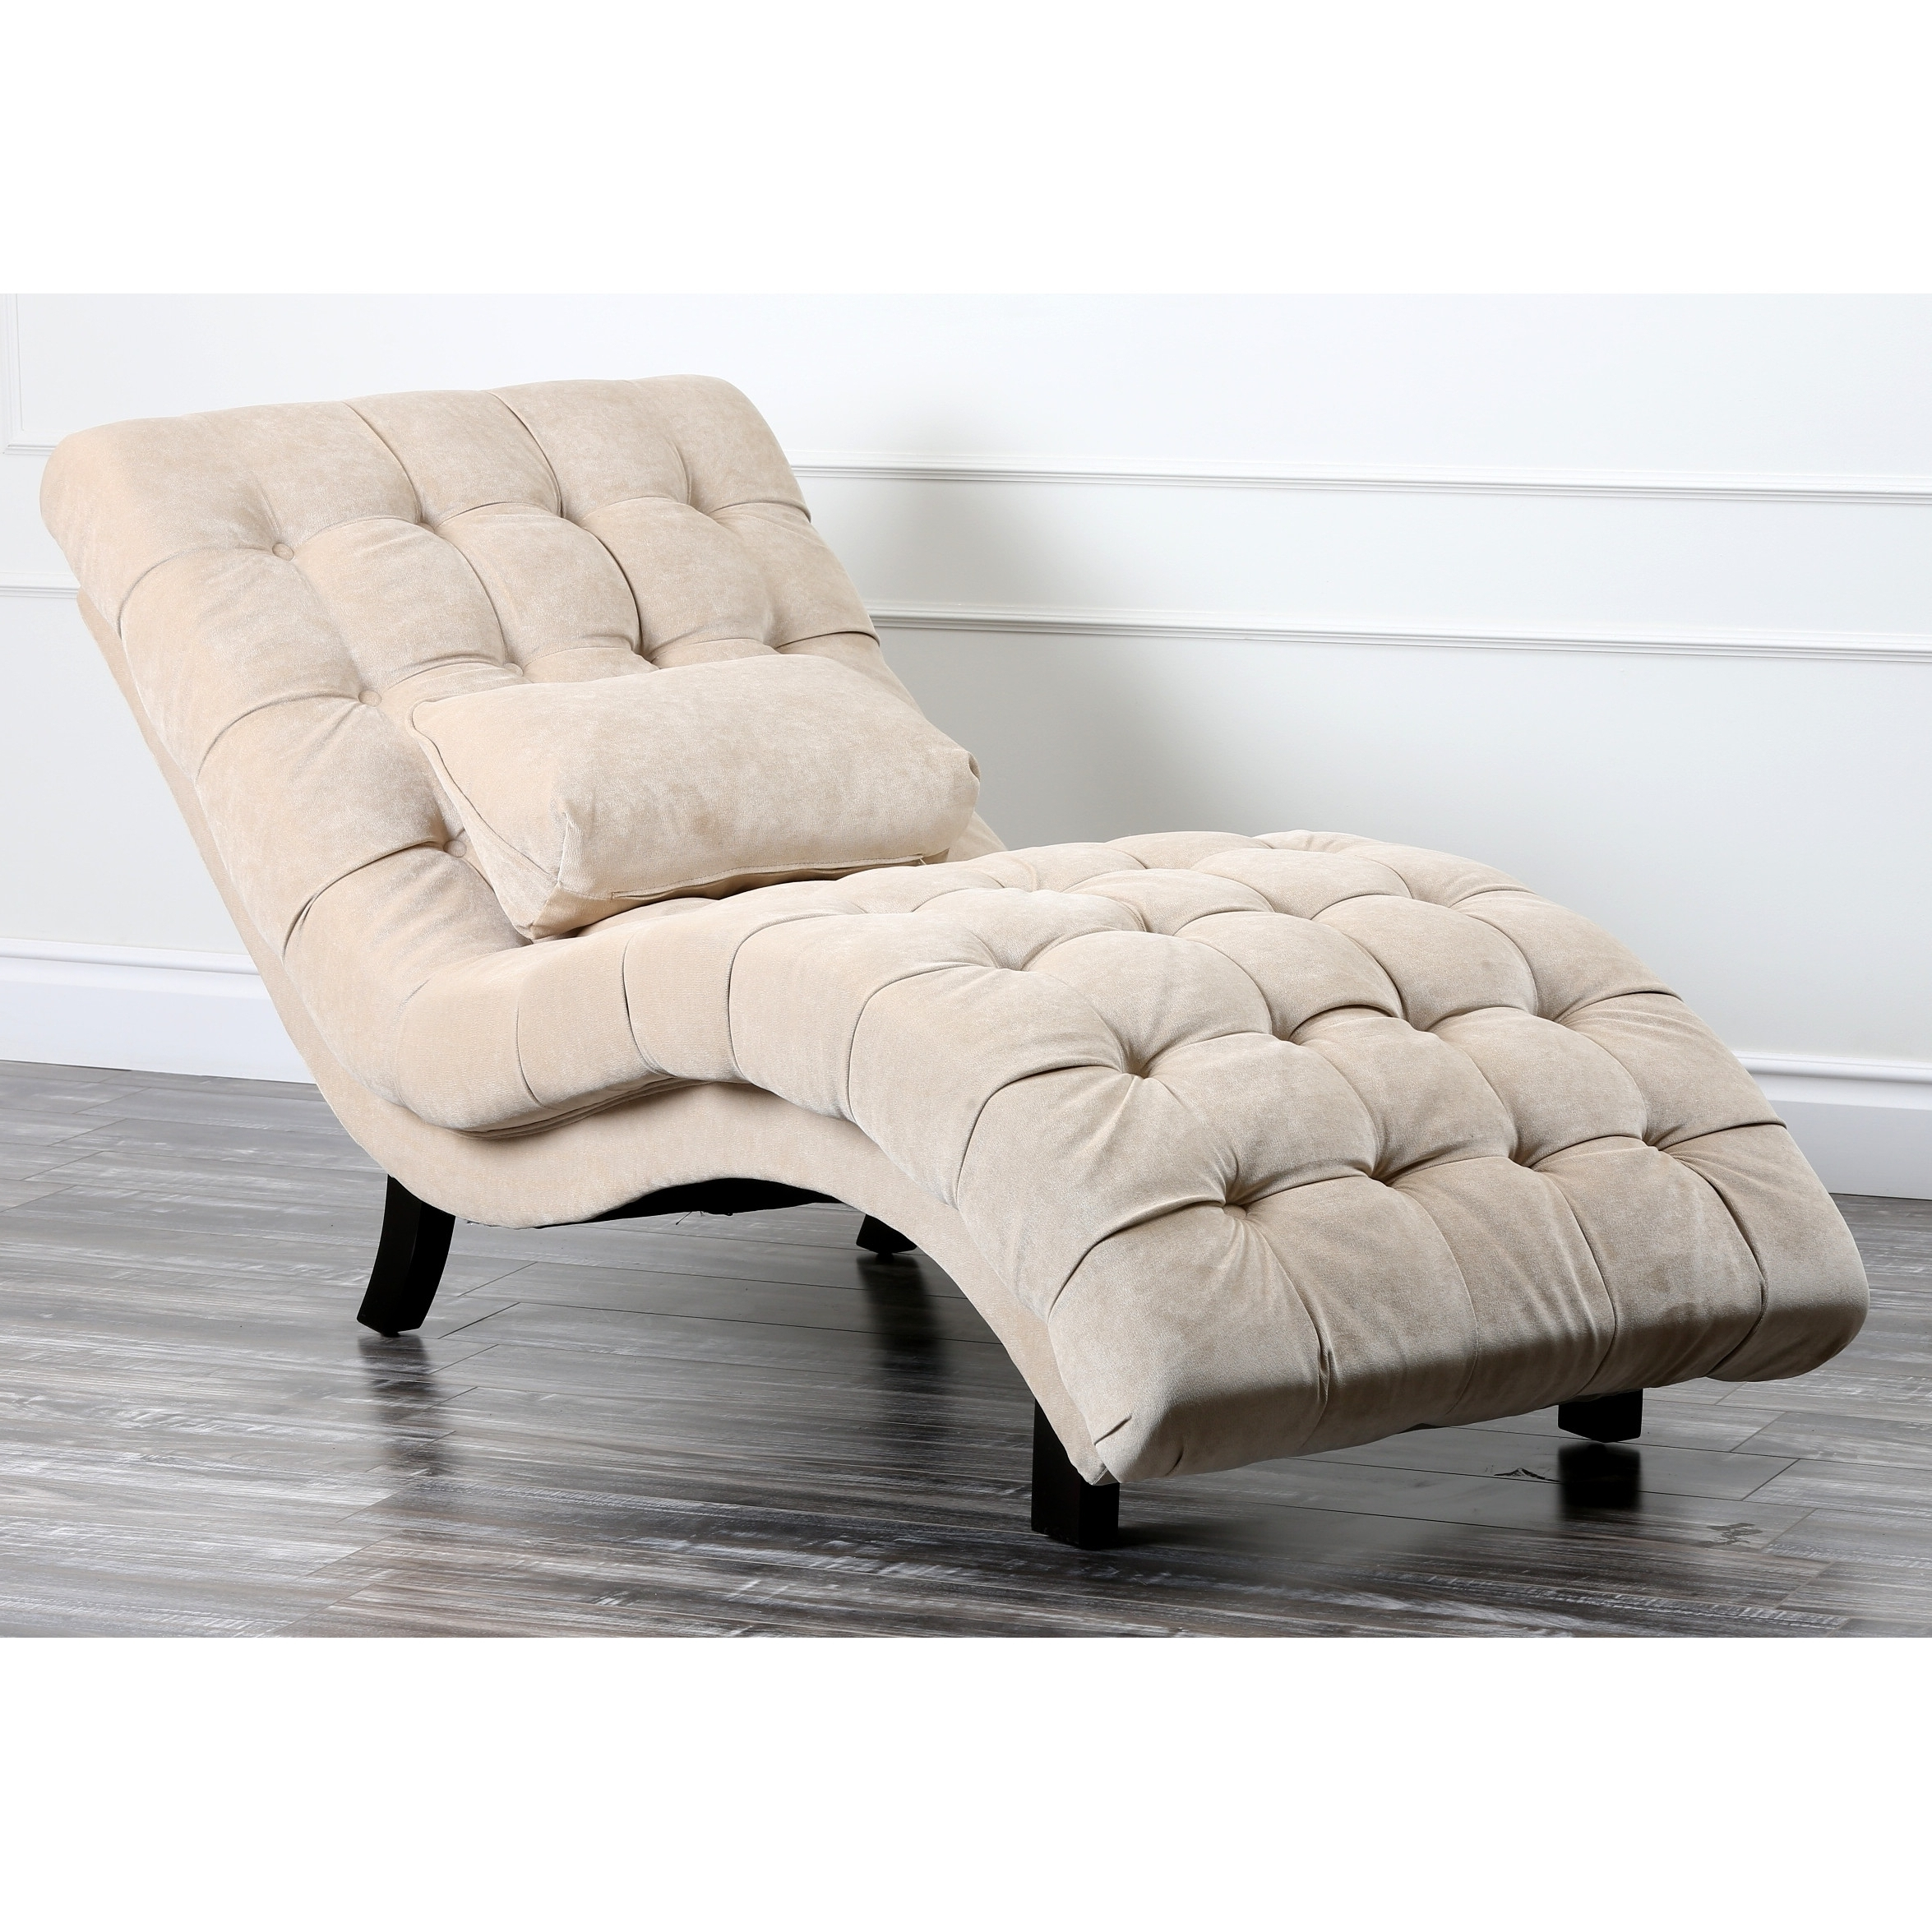 Fabric Chaise Lounge Chairs • Lounge Chairs Ideas Intended For Famous Fabric Chaise Lounge Chairs (View 6 of 15)